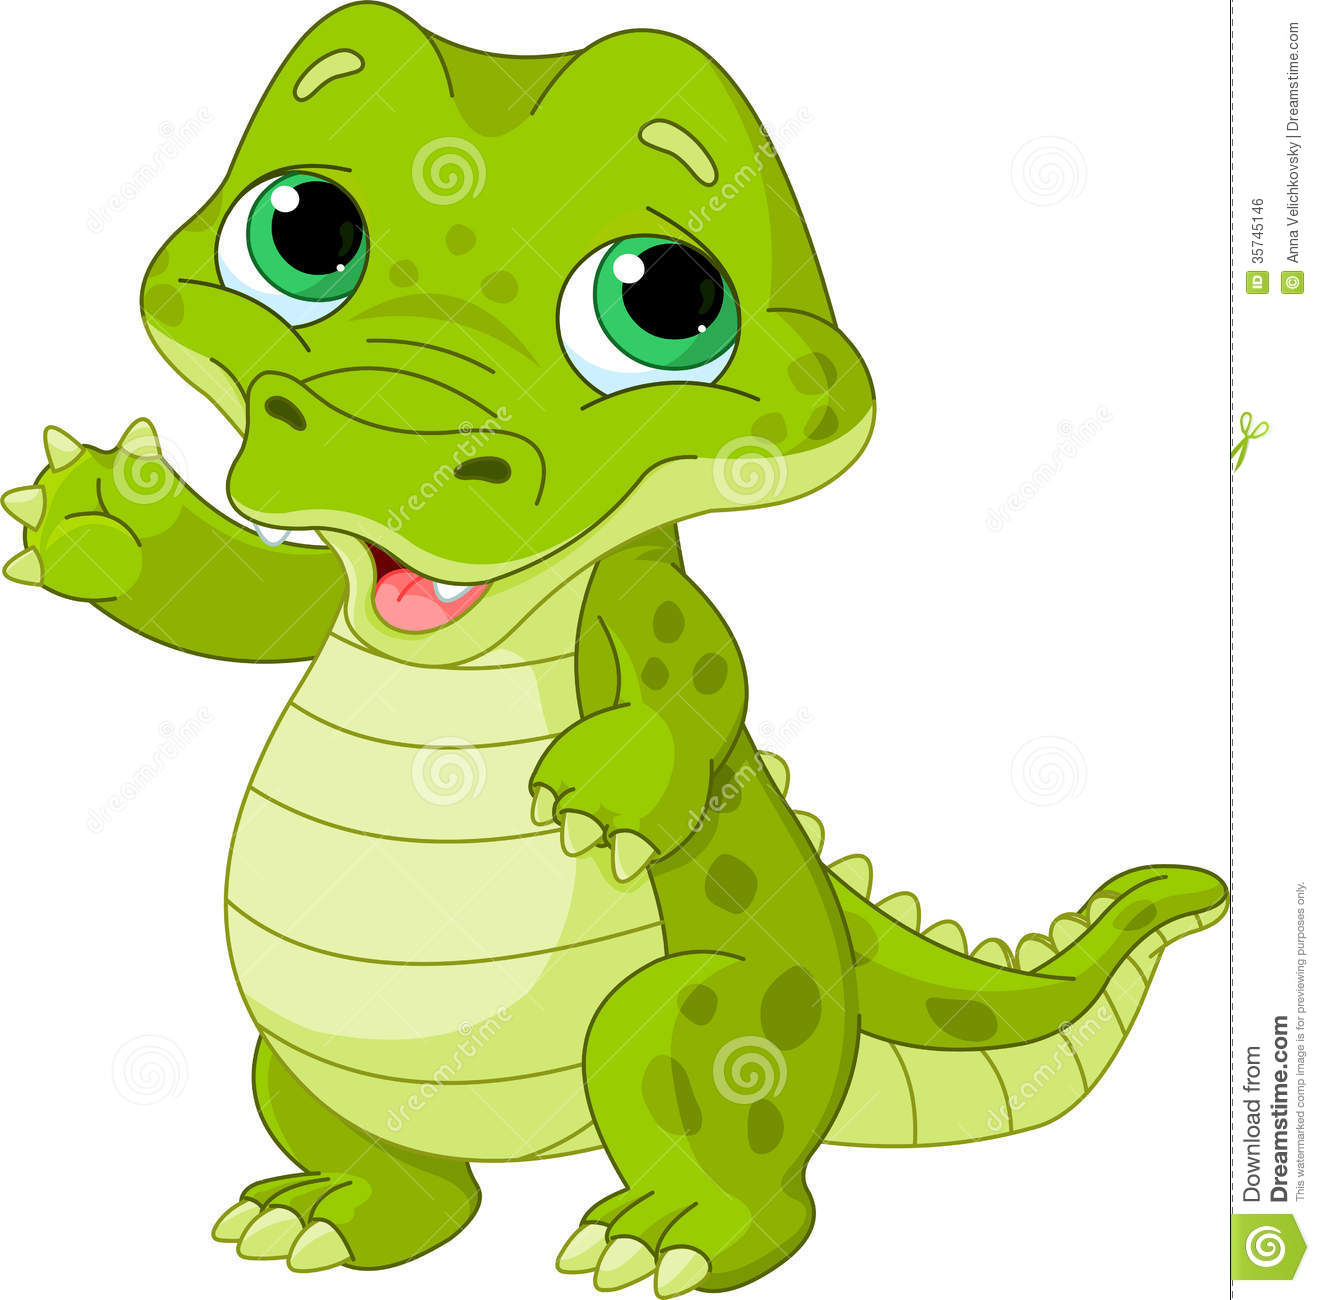 Girl alligator clipart.